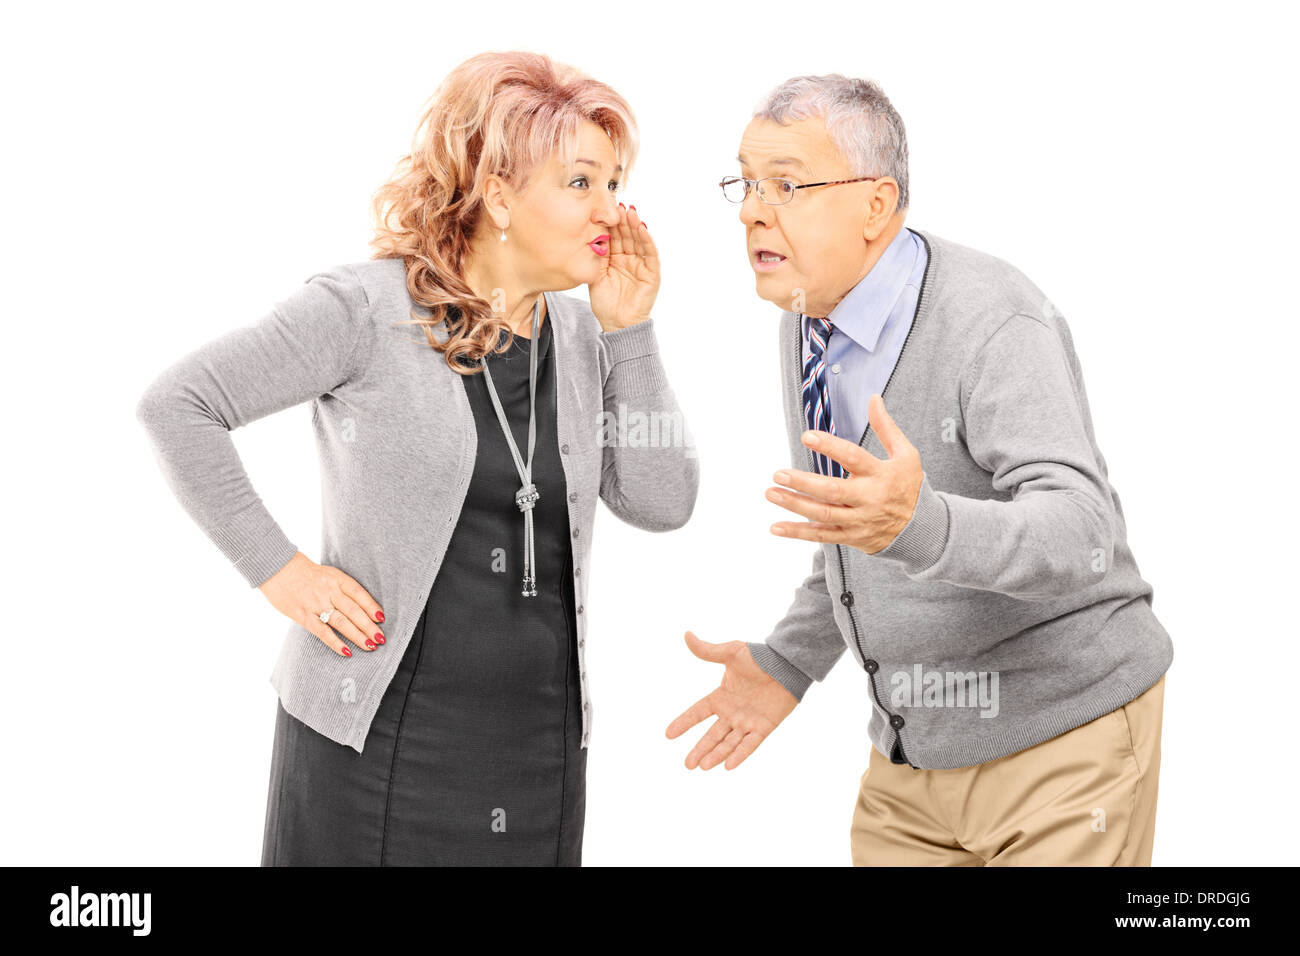 Mature lady whispering a secret to man - Stock Image